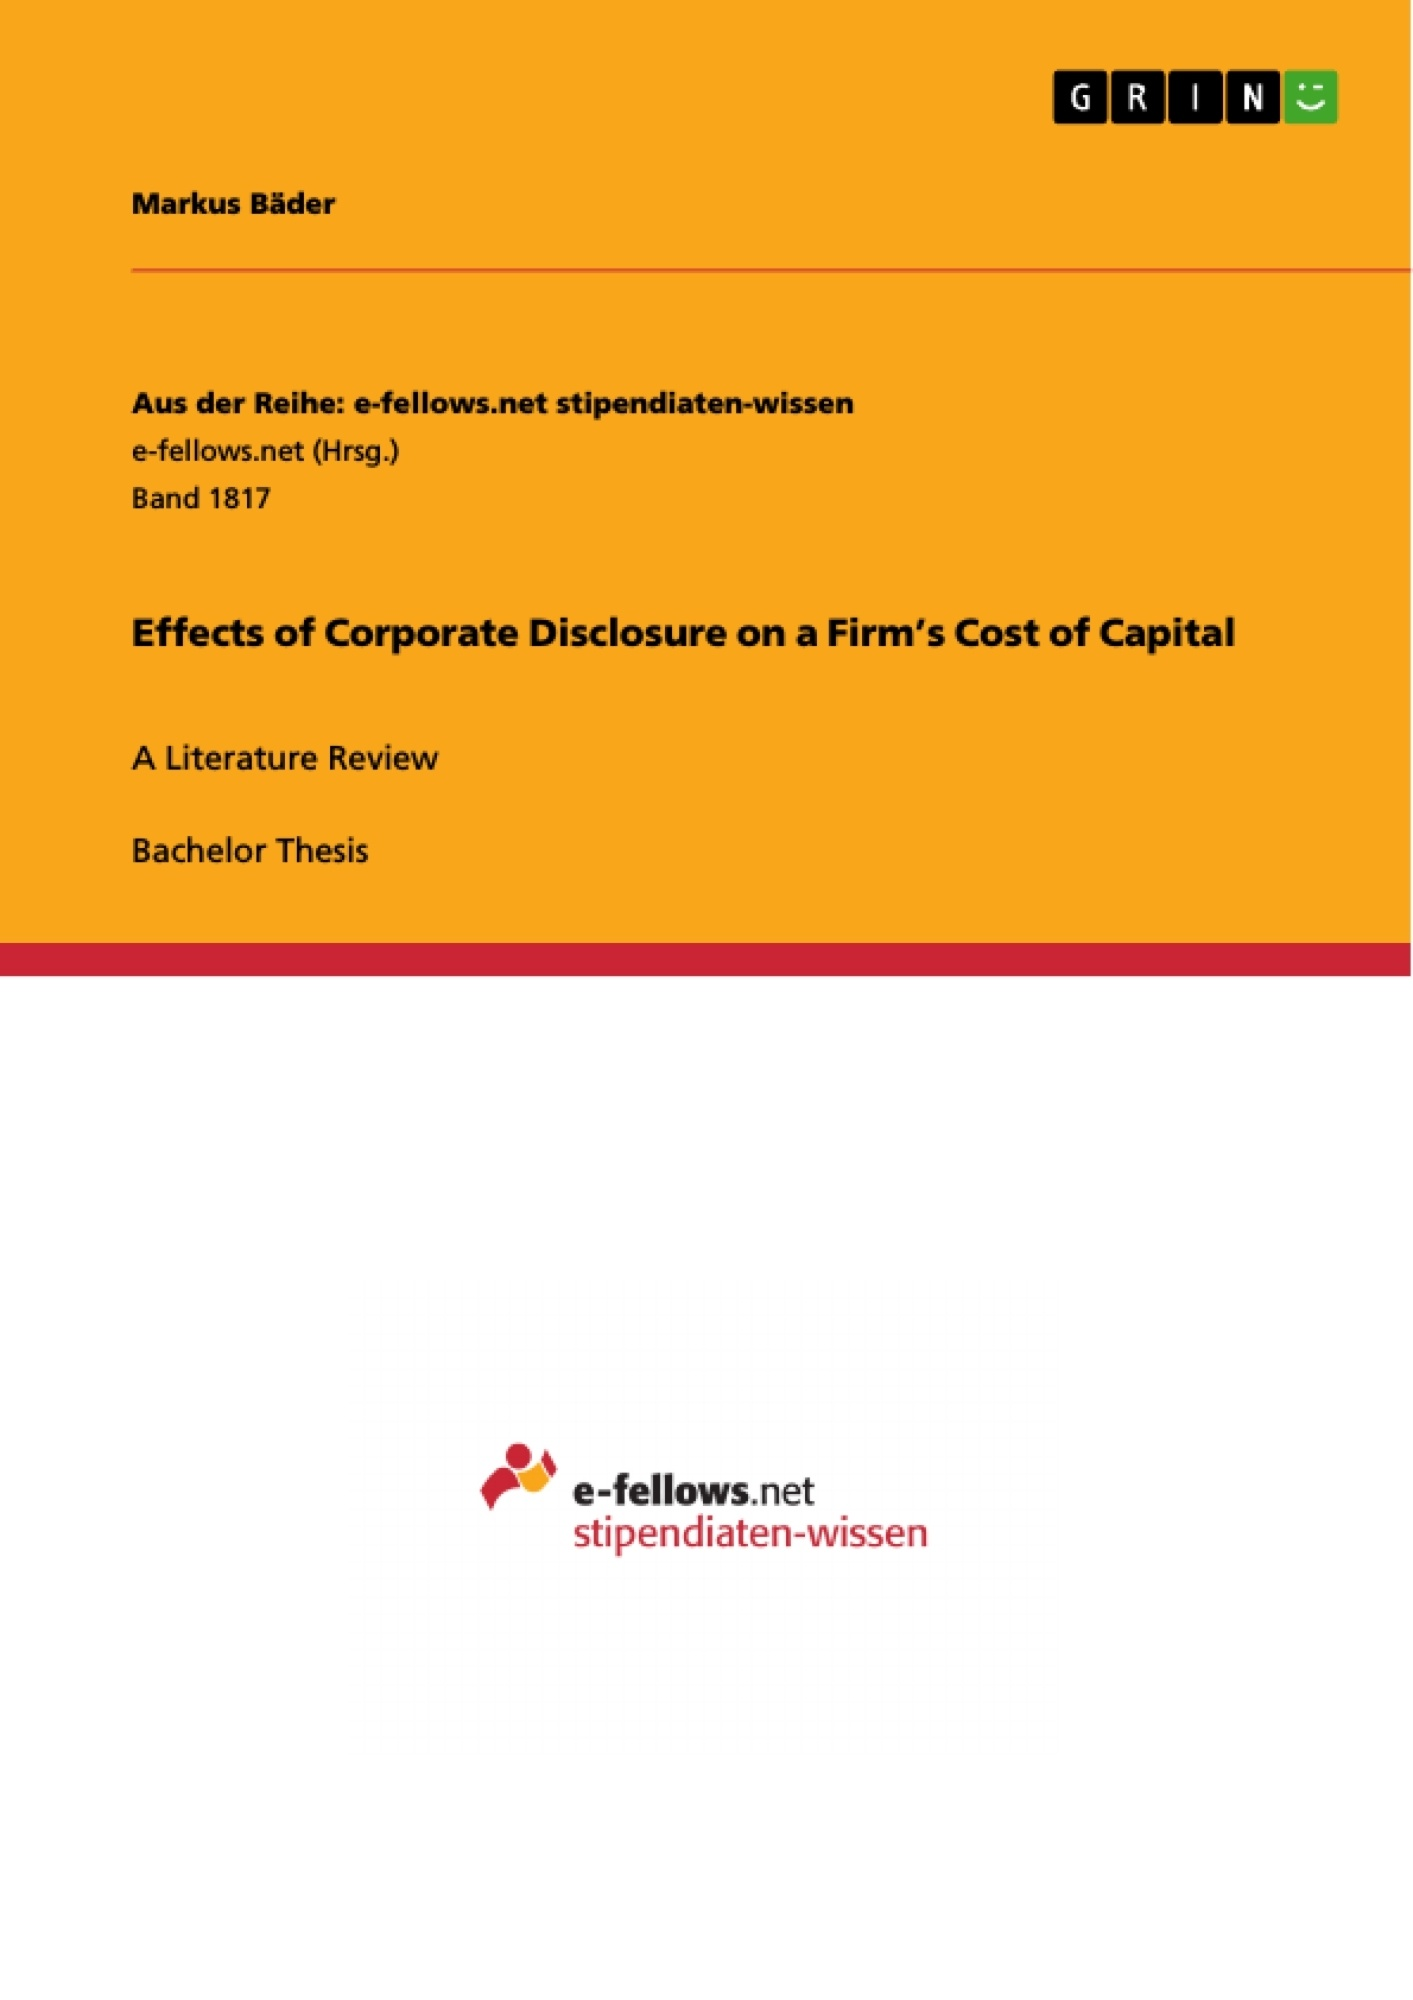 Title: Effects of Corporate Disclosure on a Firm's Cost of Capital